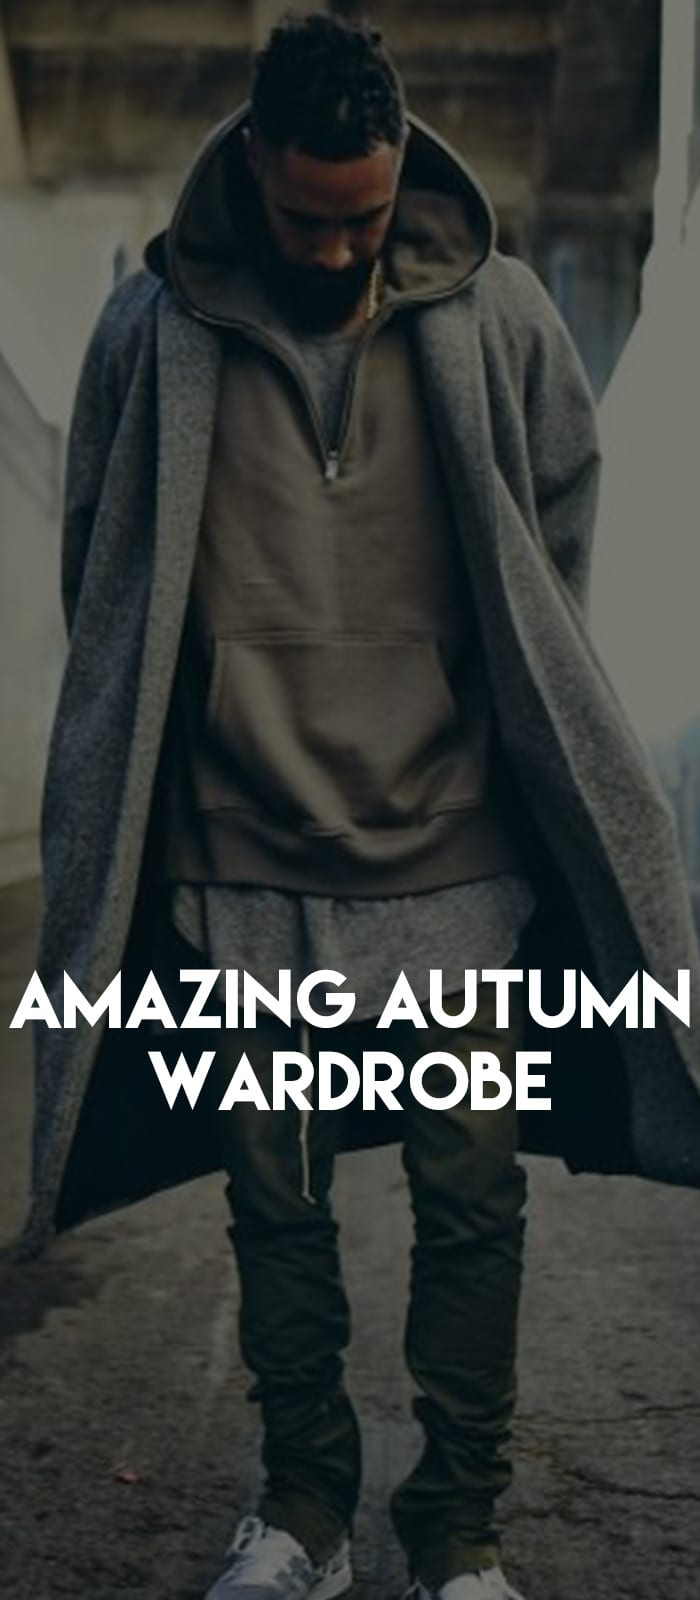 Amazing Autumn Wardrobe